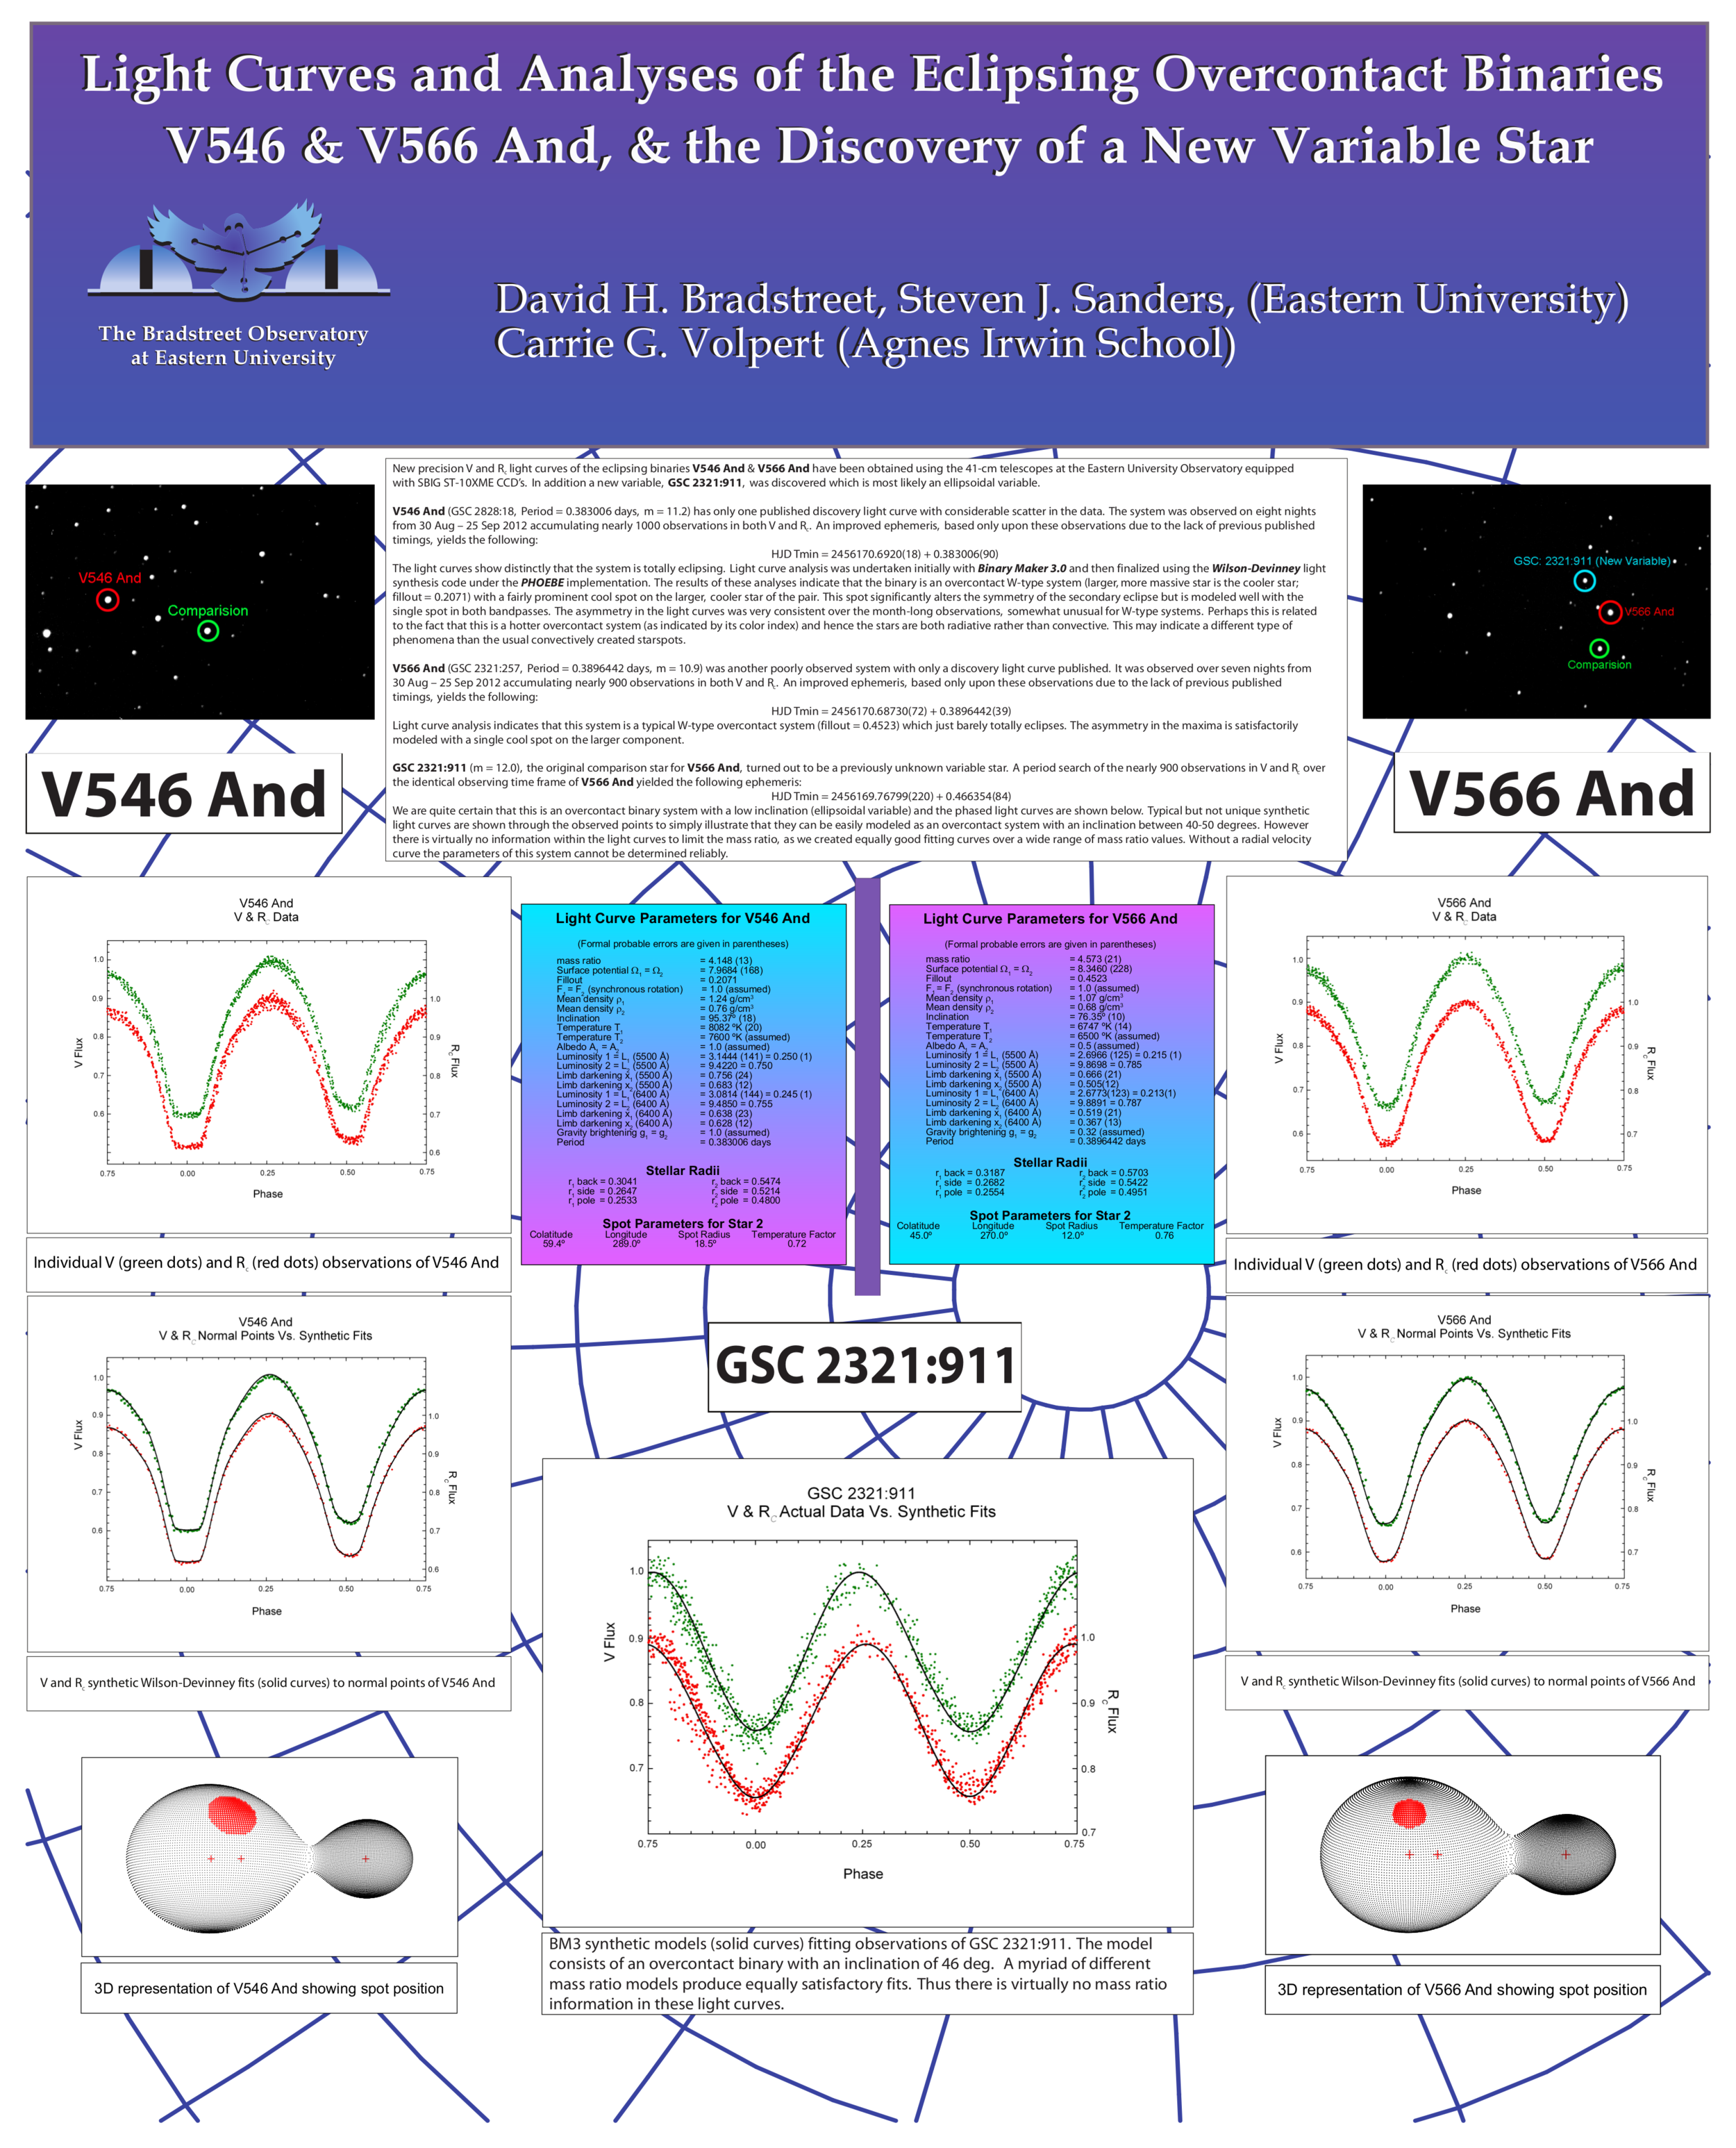 "<a href=""https://eastern-astronomy.squarespace.com/s/V566-and-V546-And-final2.pdf"">V546 And & V566 And</a>"